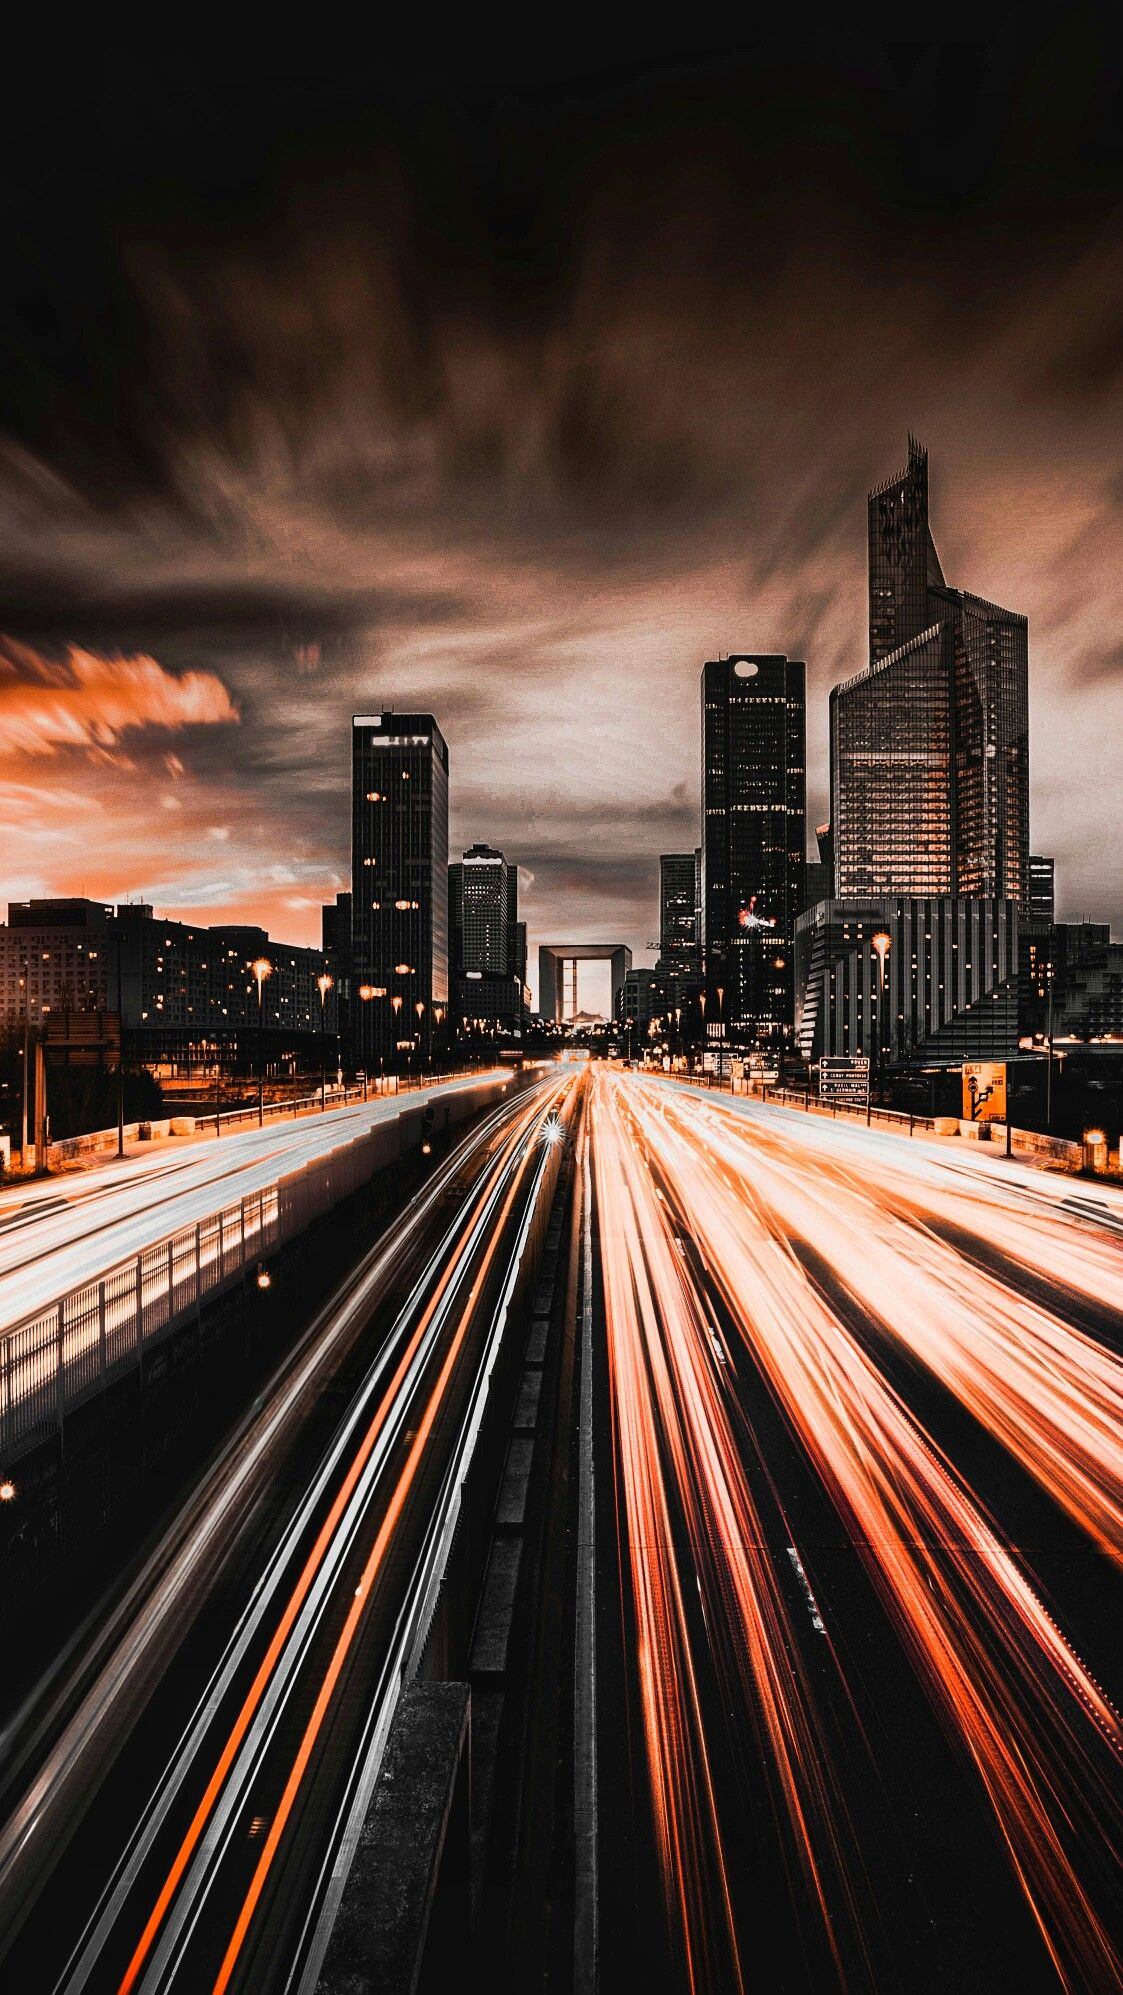 Wallpaper Of Night View Of Vehicle Head Tail Lamp Trail Background Wallpaper Night View City Iphone Wallpaper City Wallpaper Street Photography Portrait